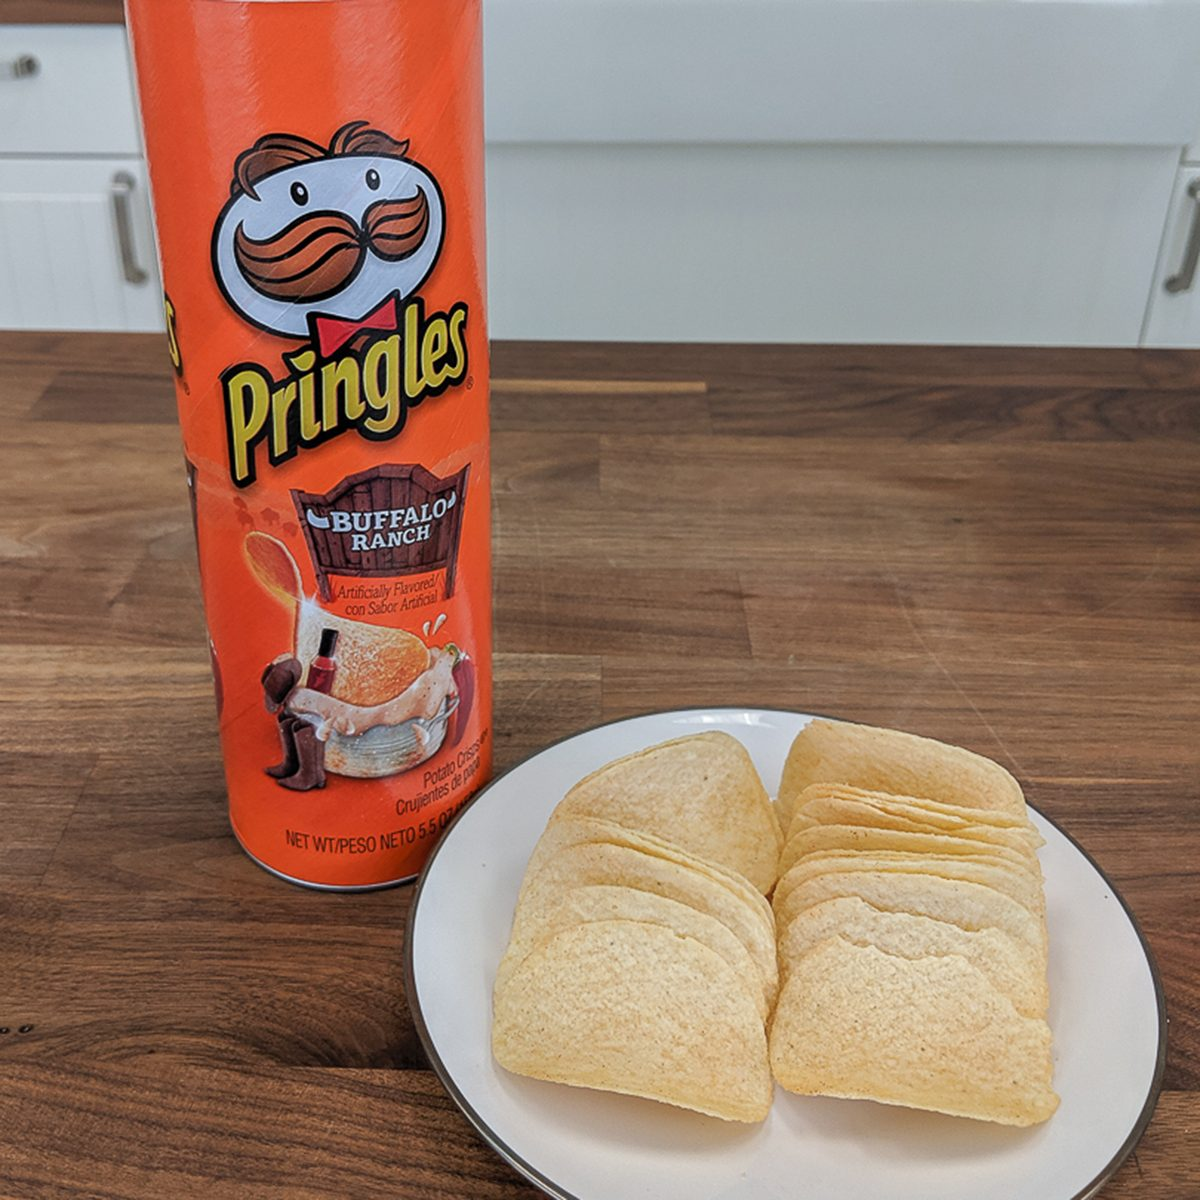 We Tried Every Single Pringles Flavor, Here's How They